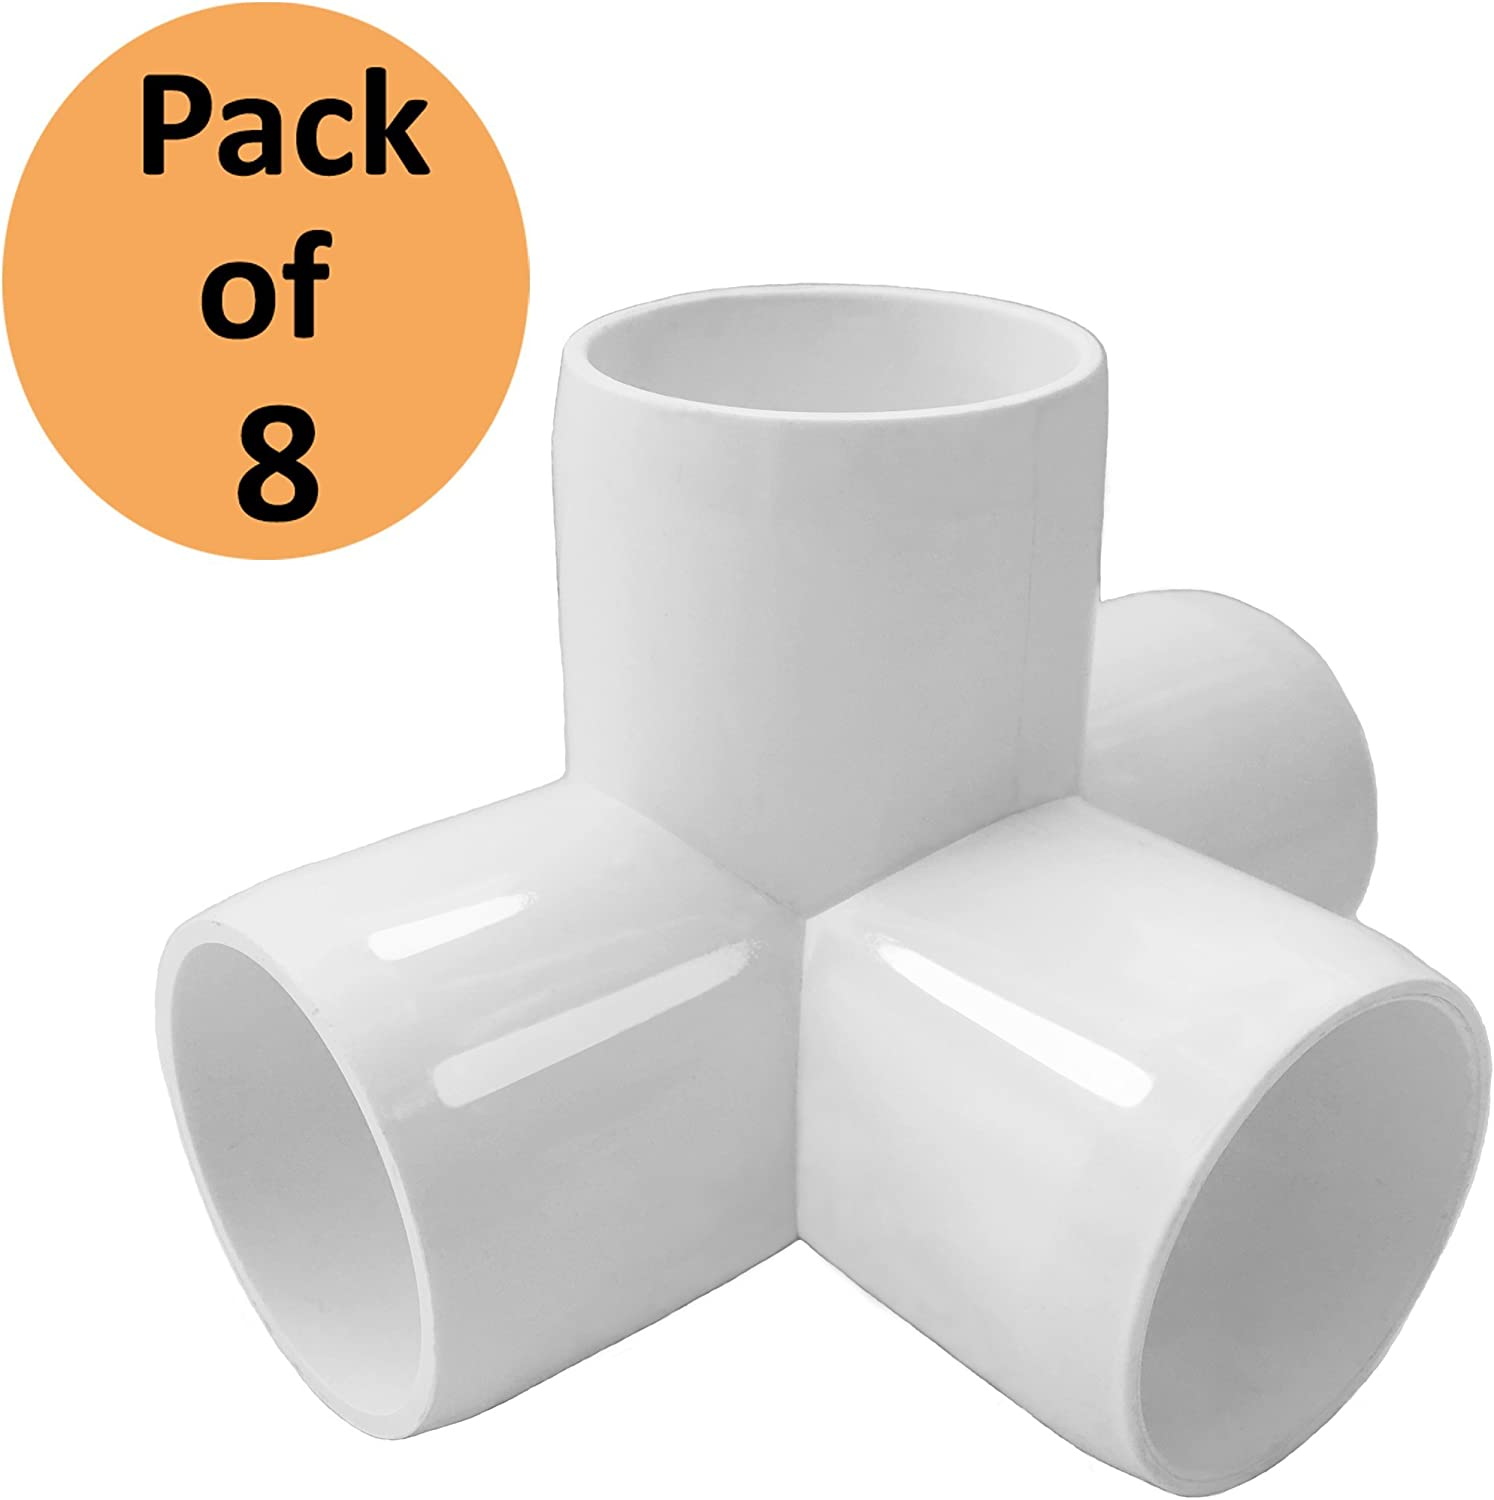 SELLERS360 4Way 1 1/4 in Tee PVC Fitting Elbow - Build Heavy Duty PVC Furniture - PVC Elbow Fittings [Pack of 8]